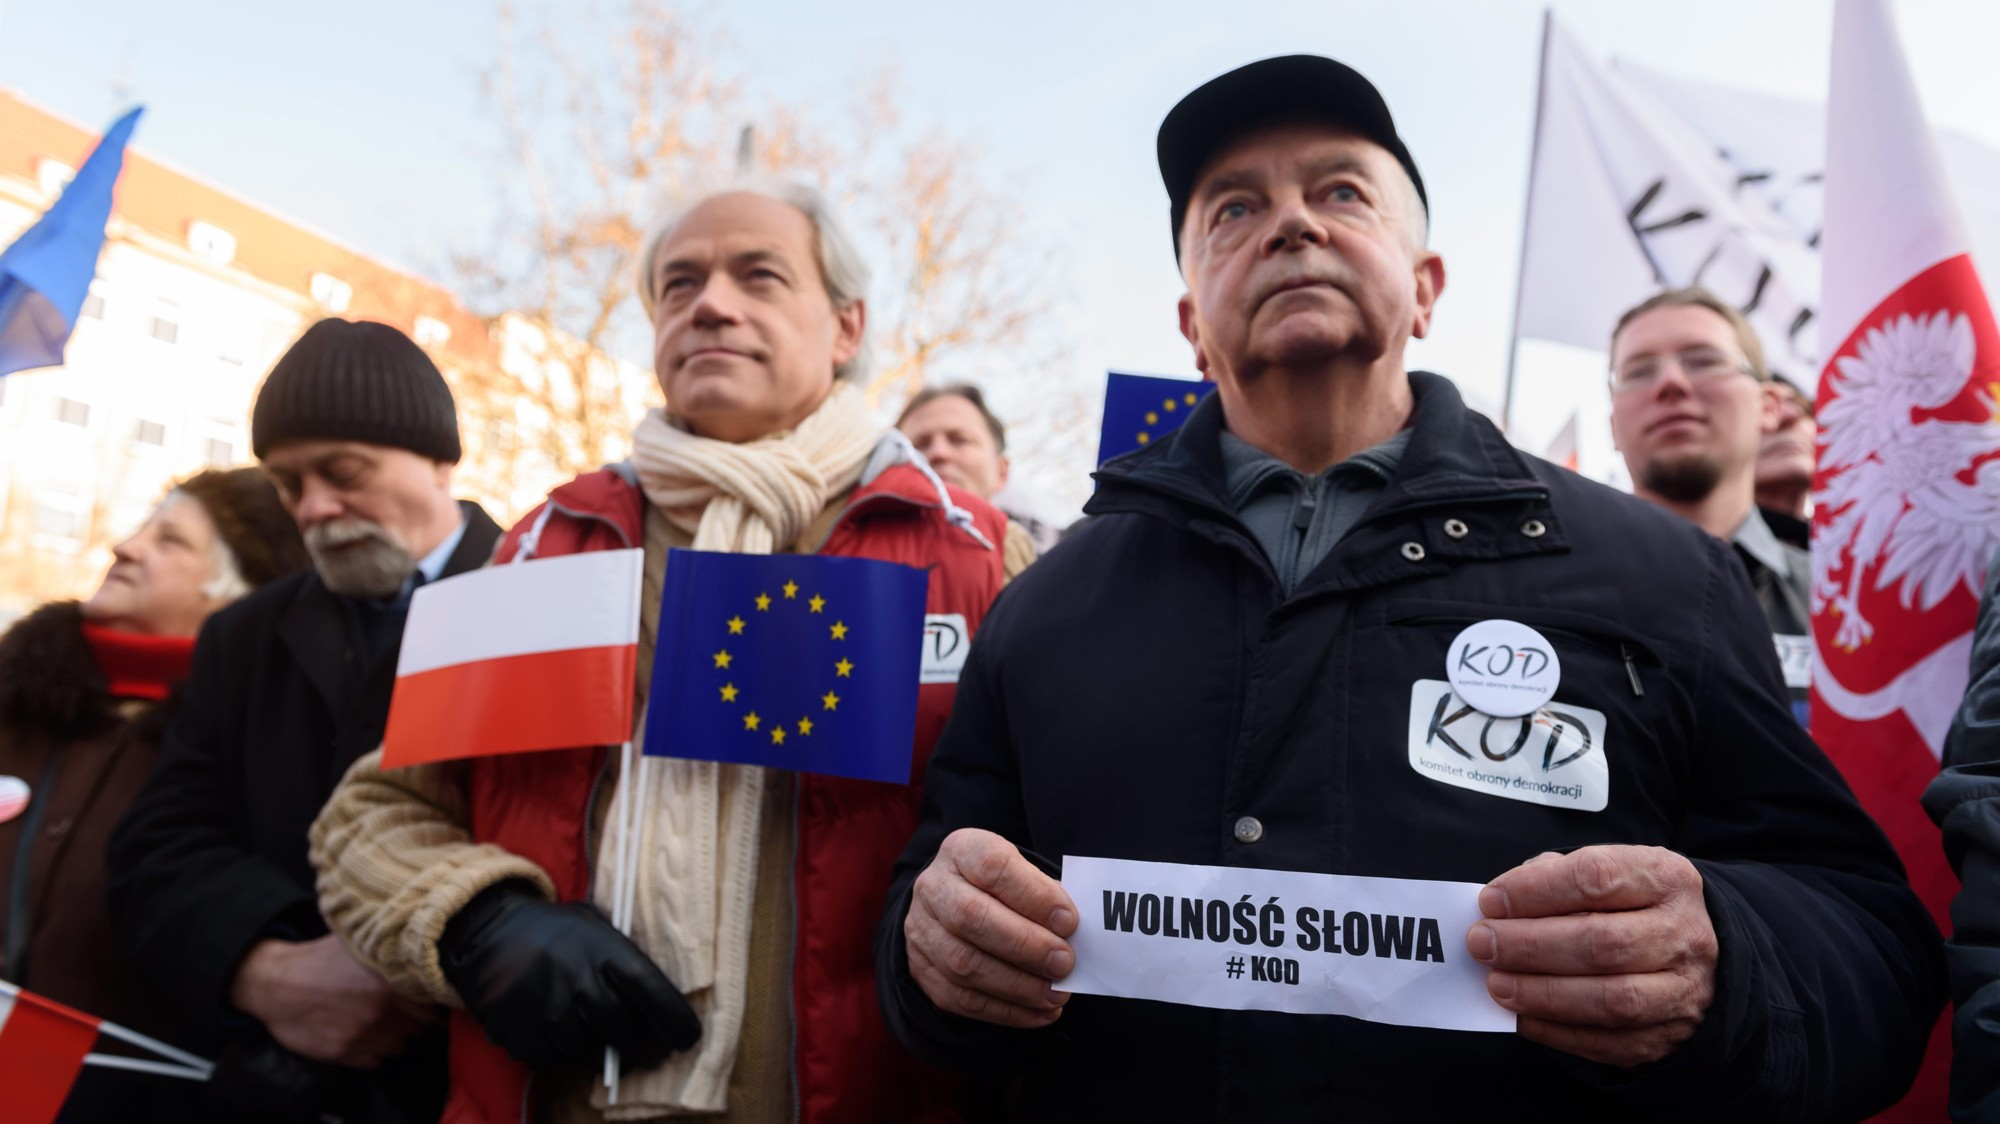 Poland's Right-Wing Government Scares Europe by Going After the Media